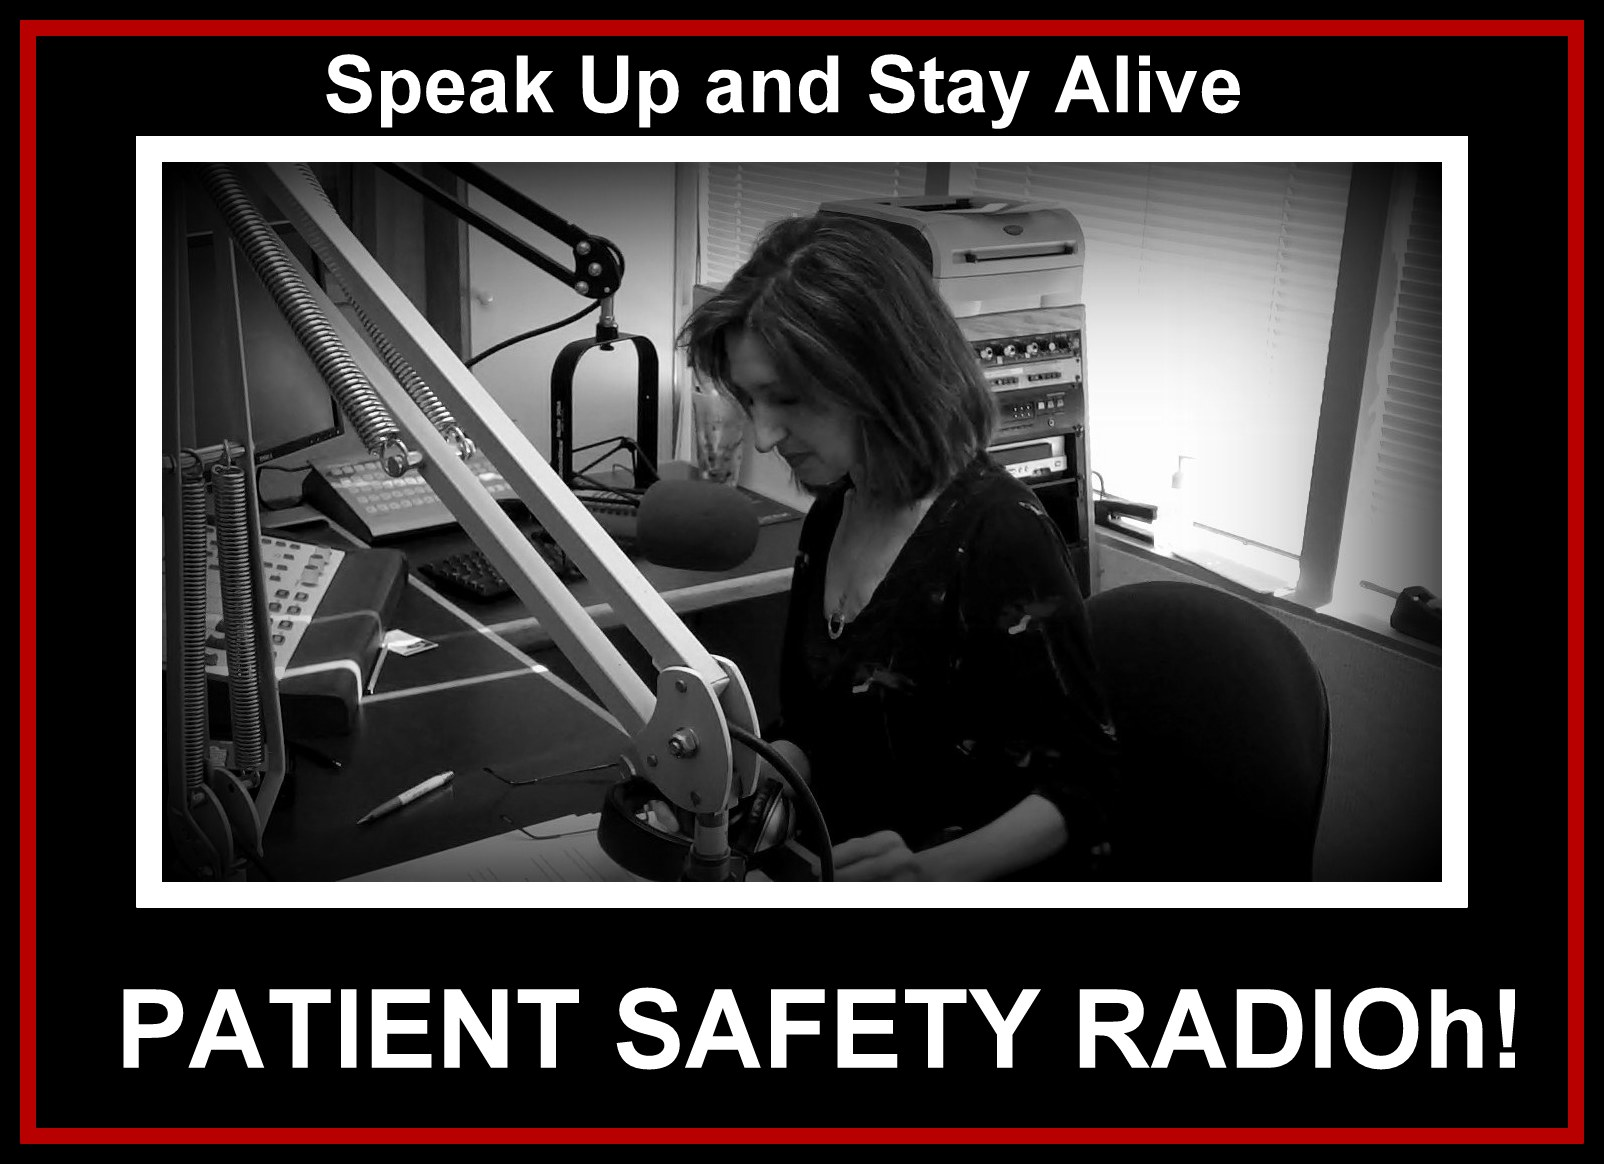 "'SPEAK UP AND STAY ALIVE"" radio"